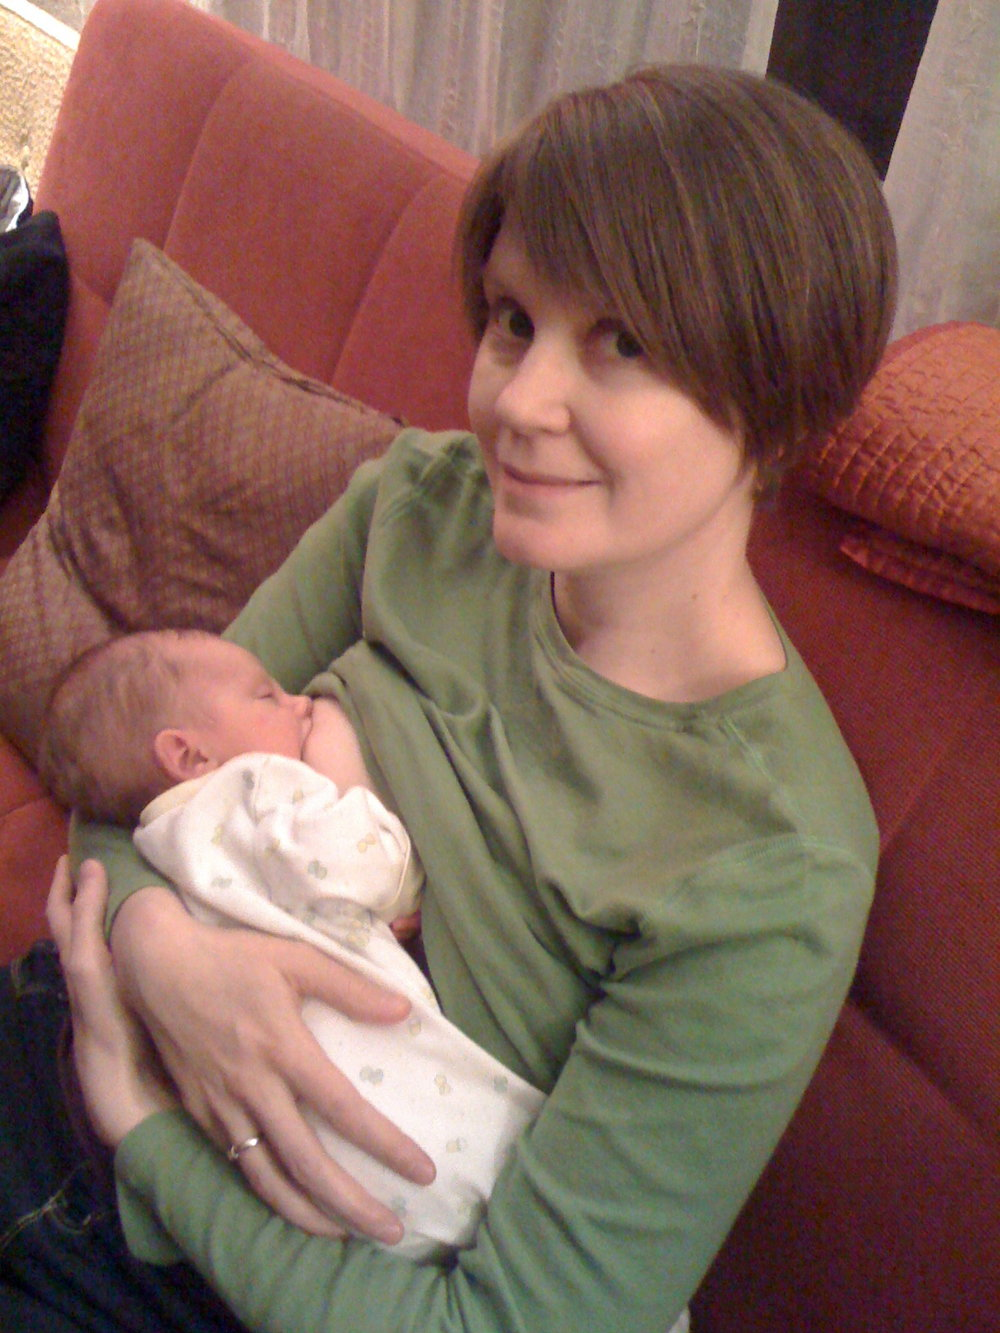 This is me, 7 years ago, sitting on the couch and nursing my baby while my parents, sisters, and husband did ALL the things in the list above. Except caring for older children, cause this little guy is my one and only!